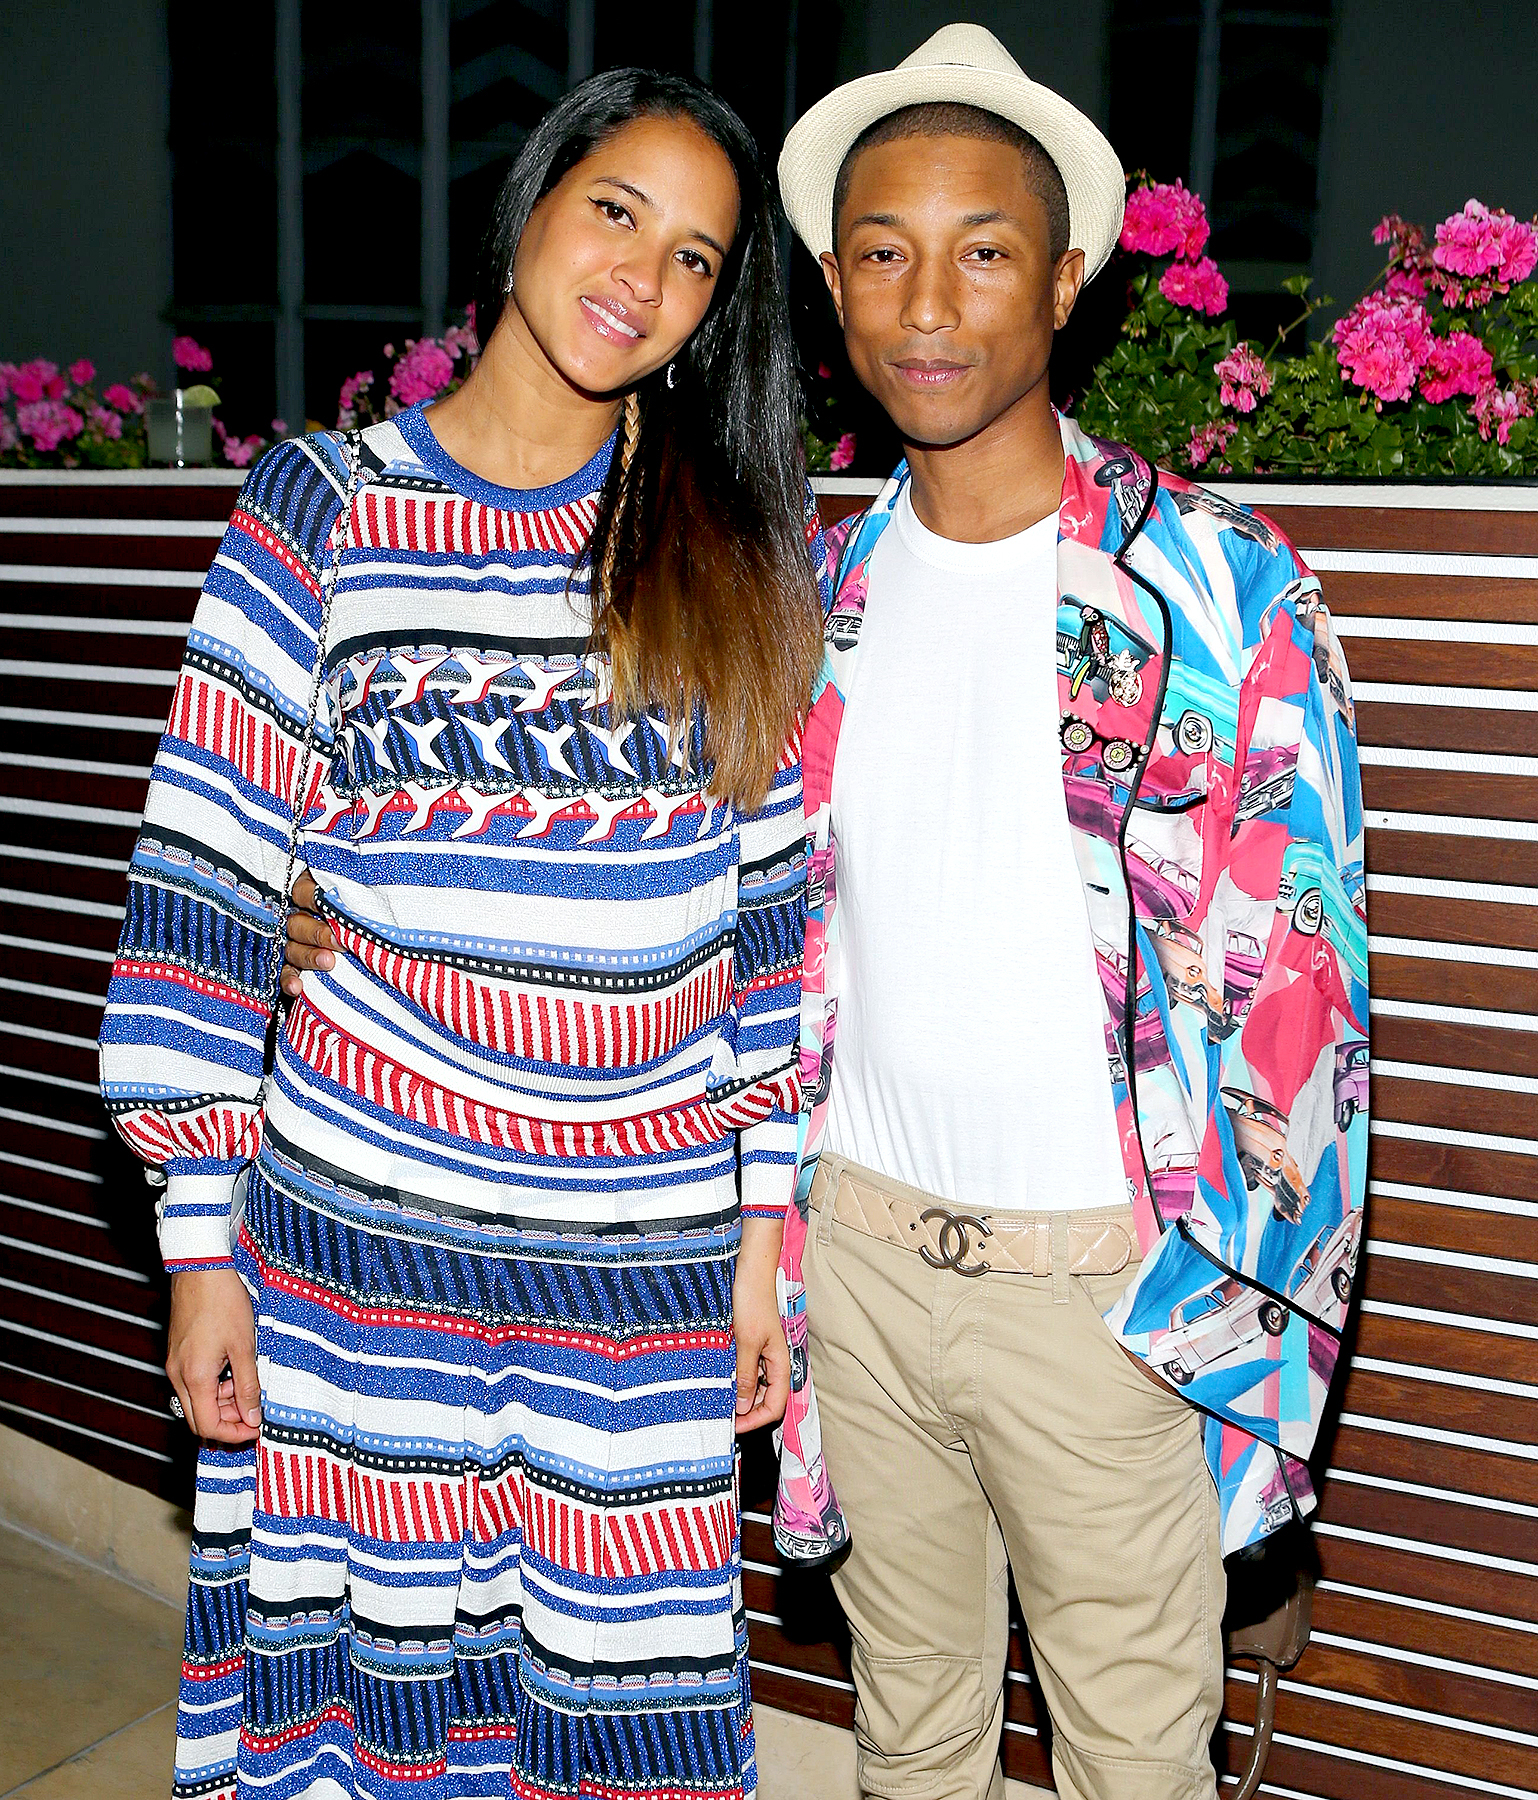 Helen Lasichanh and Pharrell Williams celebrates the launch of 'No.5 L'eau' on September 22, 2016.